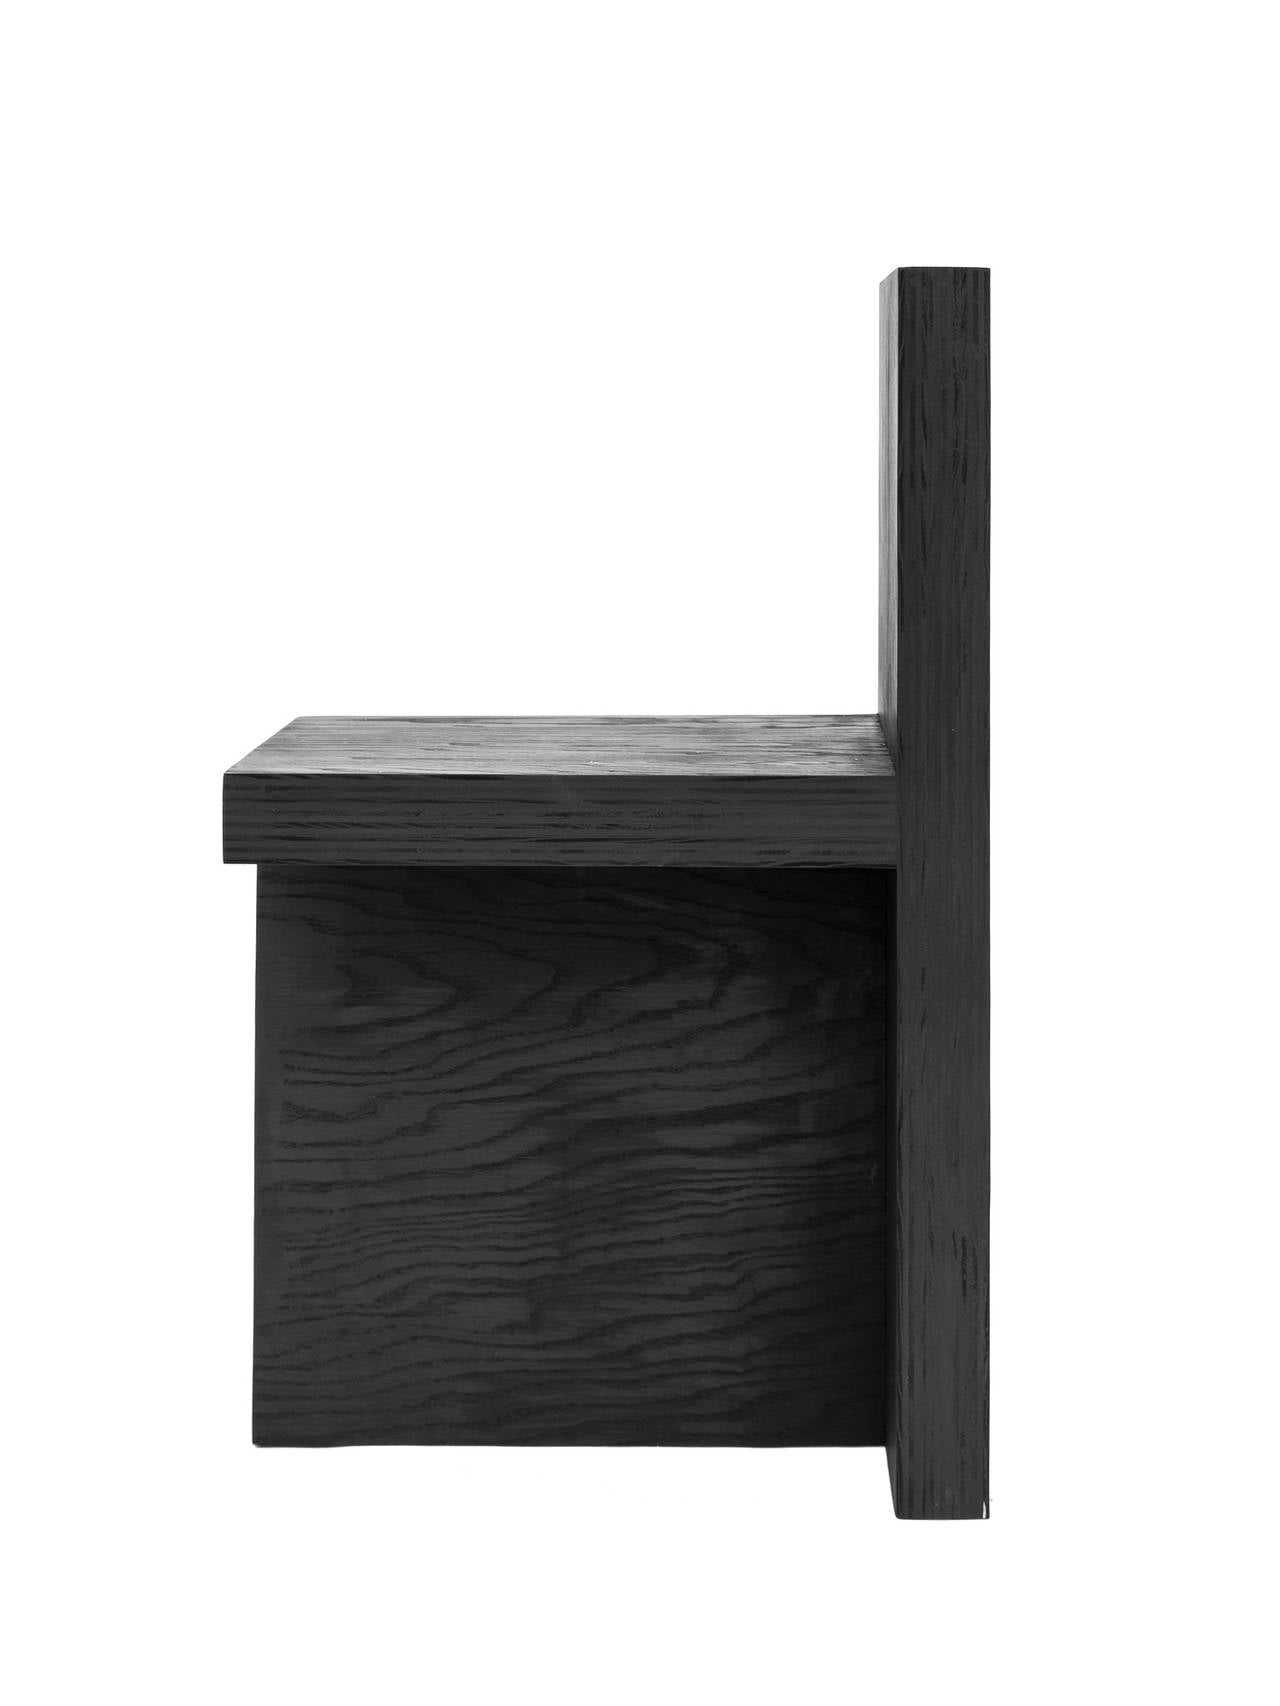 Minimalist 'Monument  IV' Plywood Chair in Black by Lukas Machnik For Sale